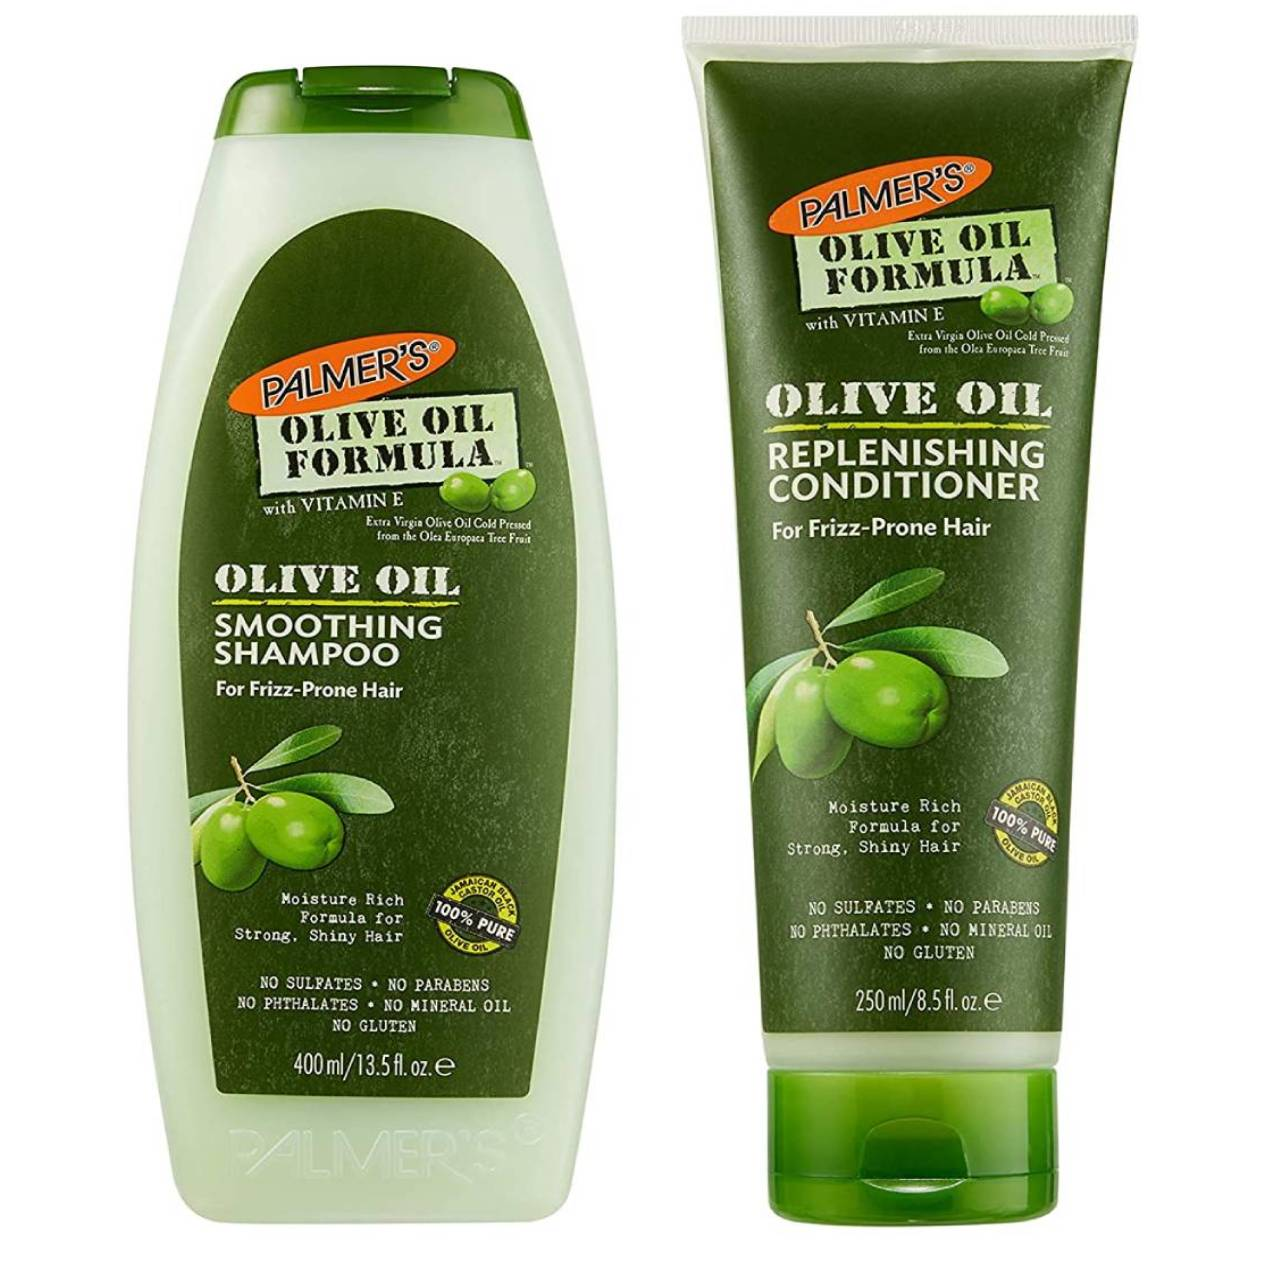 Palmer's Olive Oil Smoothing Shampoo & Replenishing Conditioner - 250-400ml